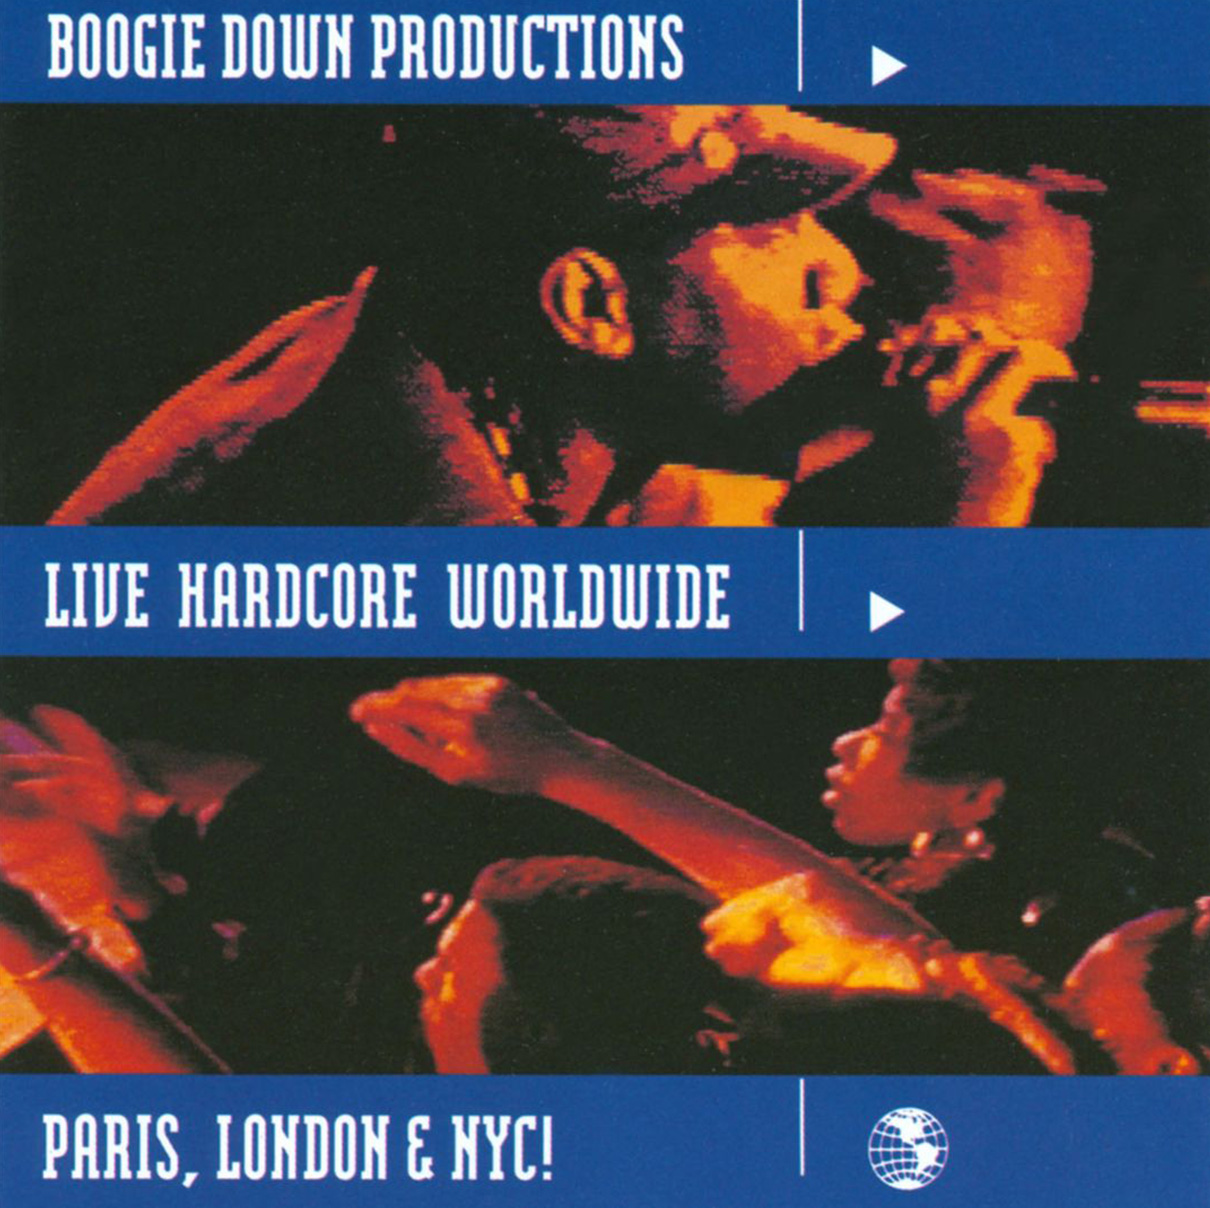 The Great (Live) Albums: Boogie Down Productions' 'Live Hardcore